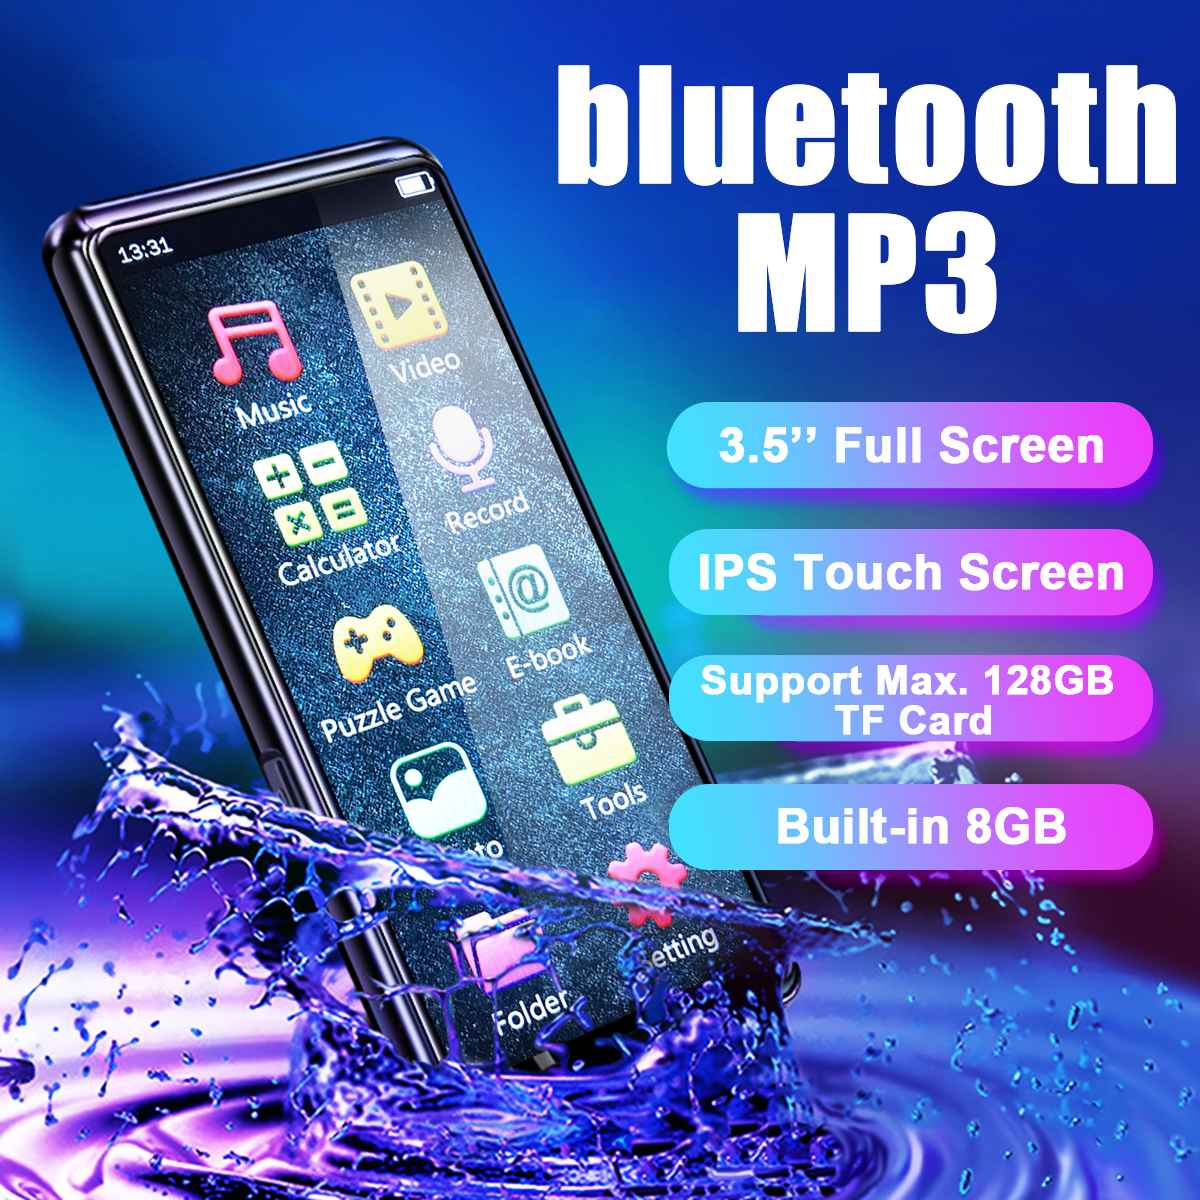 3,5 zoll Touch Screen bluetooth Hifi <font><b>MP3</b></font> Musik <font><b>Player</b></font> <font><b>Video</b></font> Voice Recorder FM Radio gebaut in 8GB Lautsprecher up tp 128GB TF Karte image